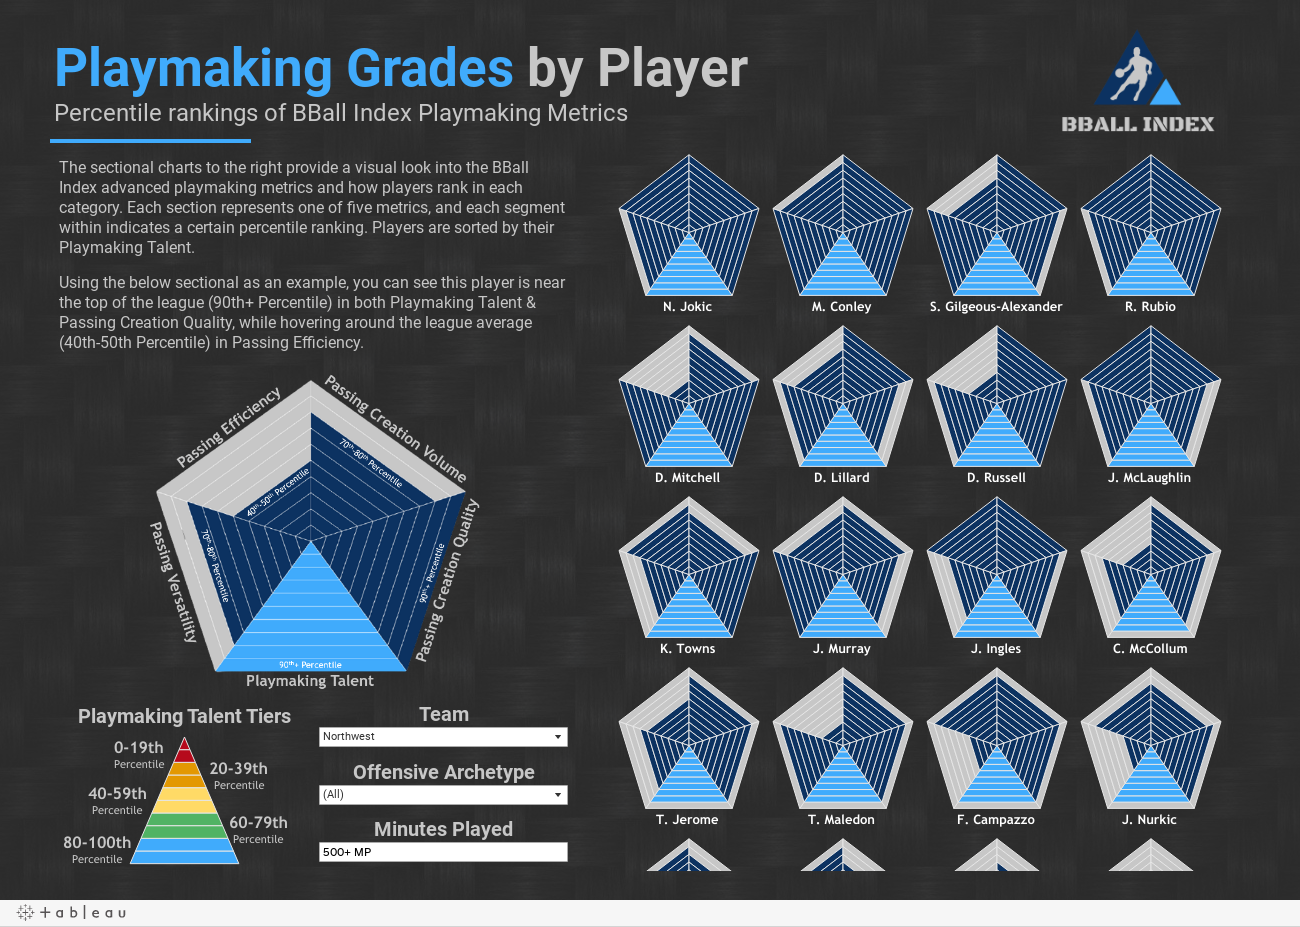 Playmaking Grades